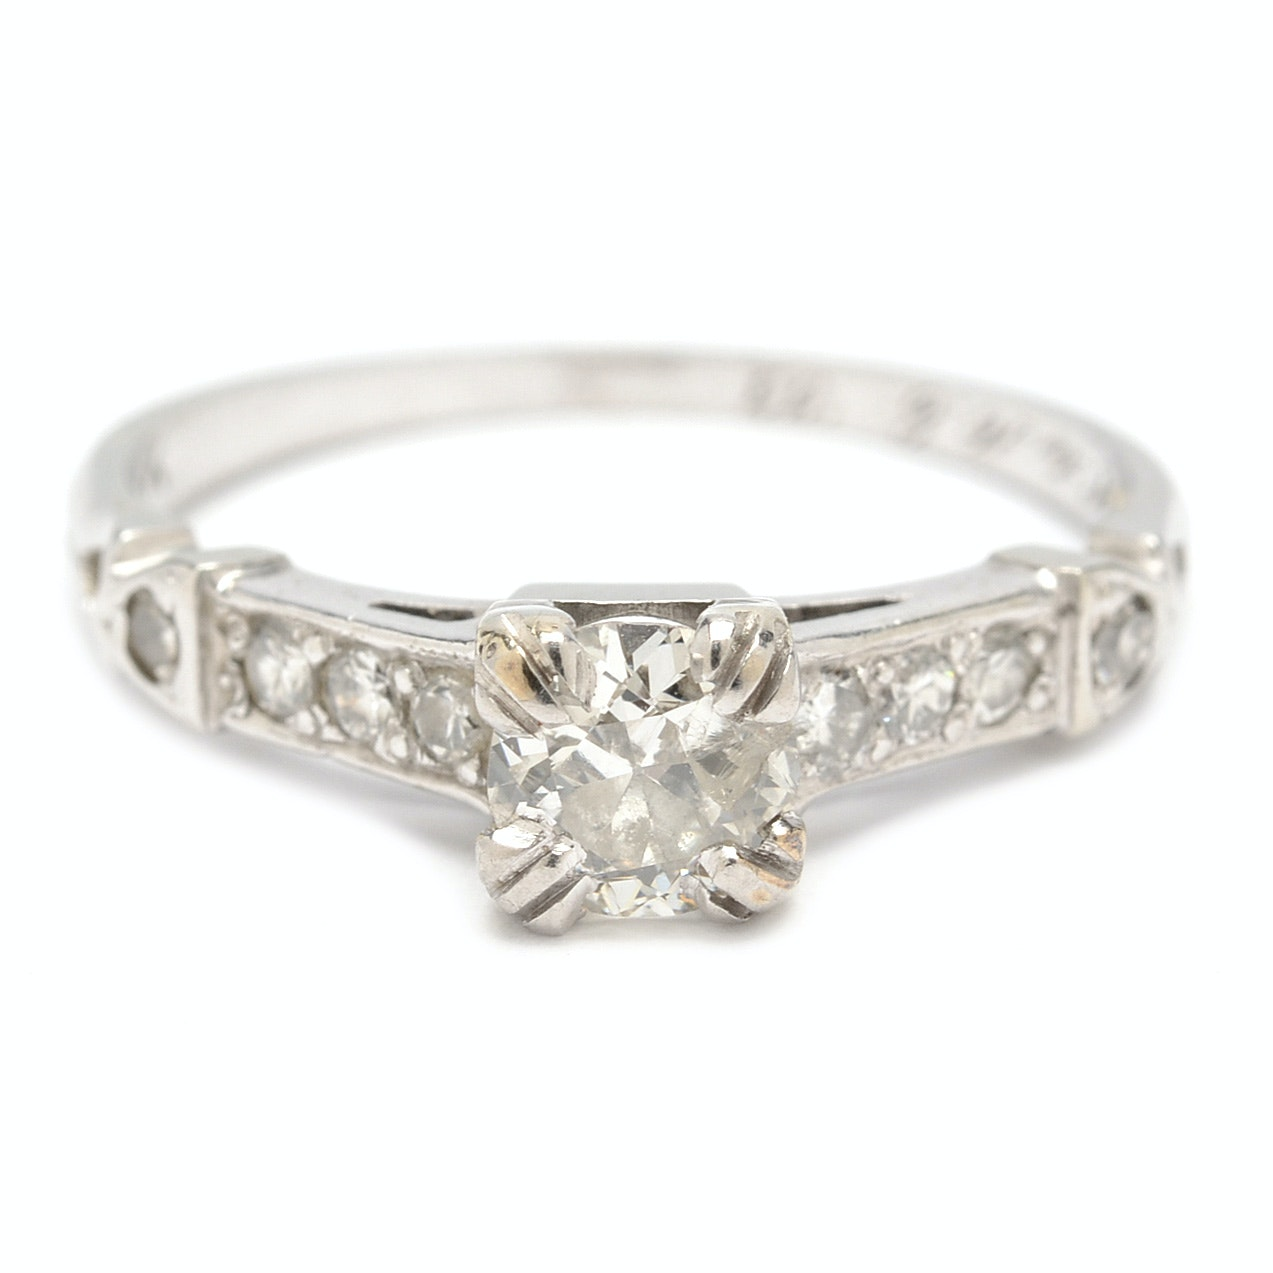 18K White Gold Art Deco Transitional Cut Diamond Ring